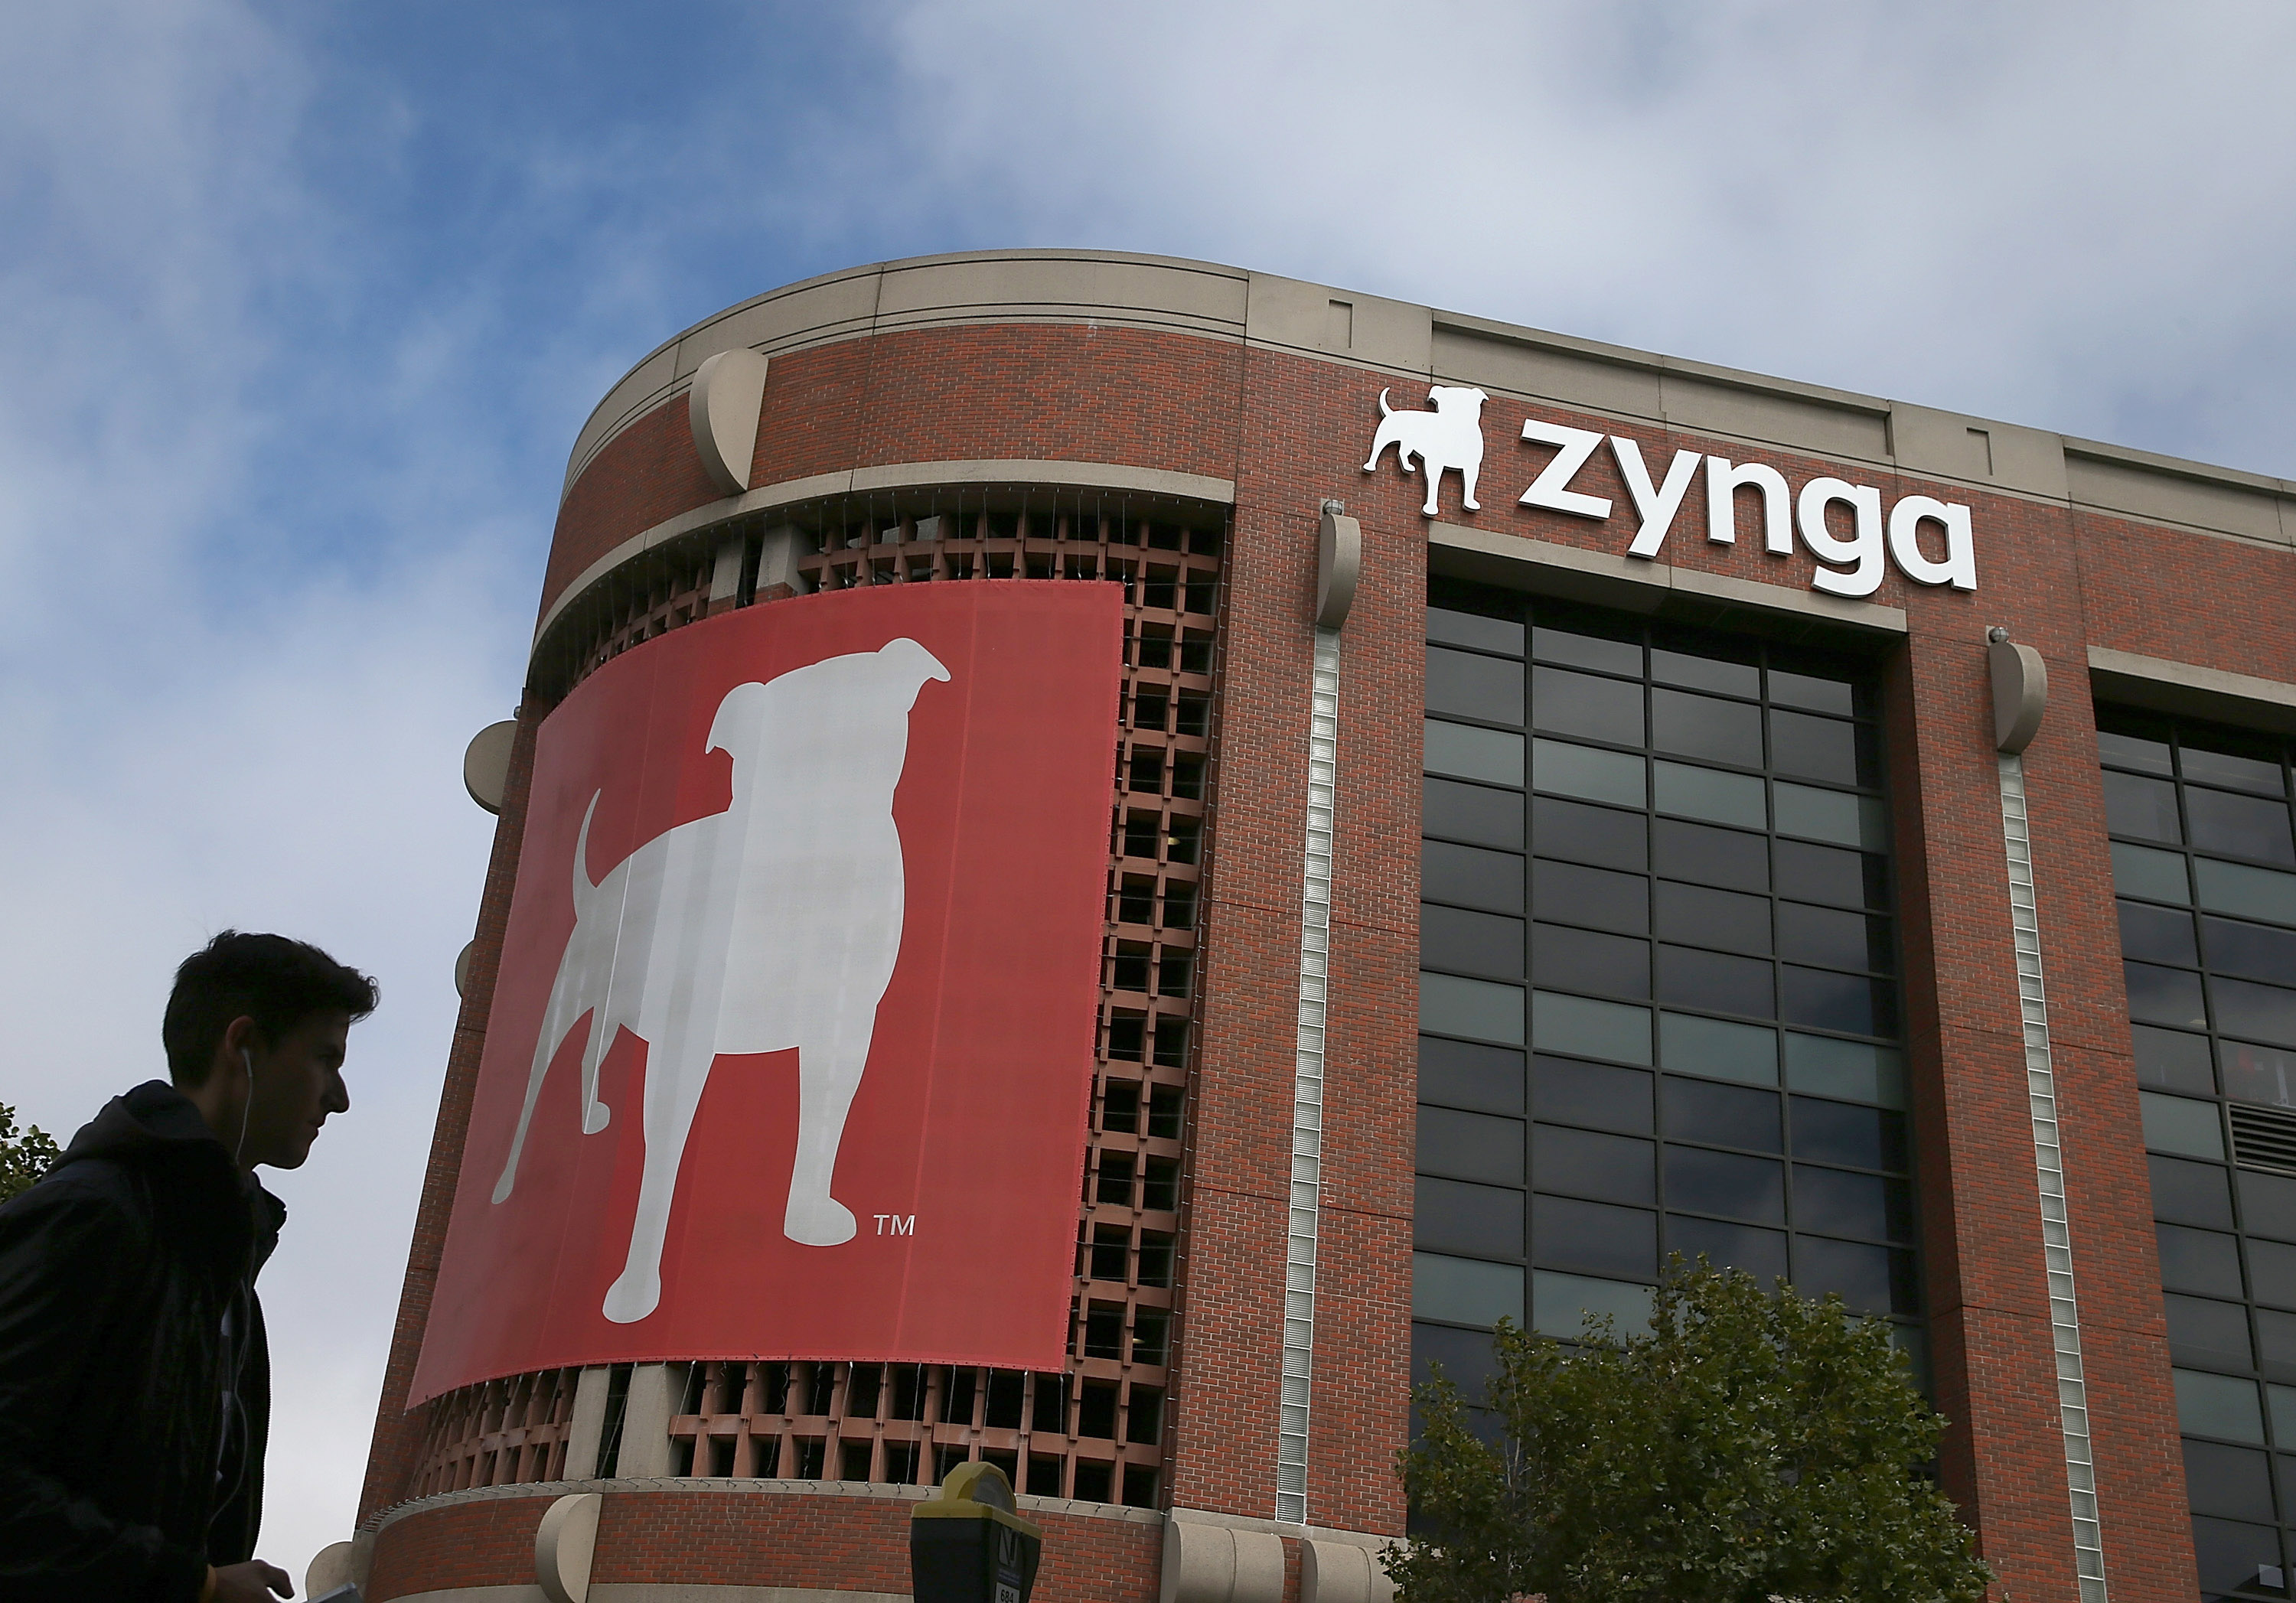 Some 170 million users of Words With Friends, and Draw Something may have been part of Zynga data breach